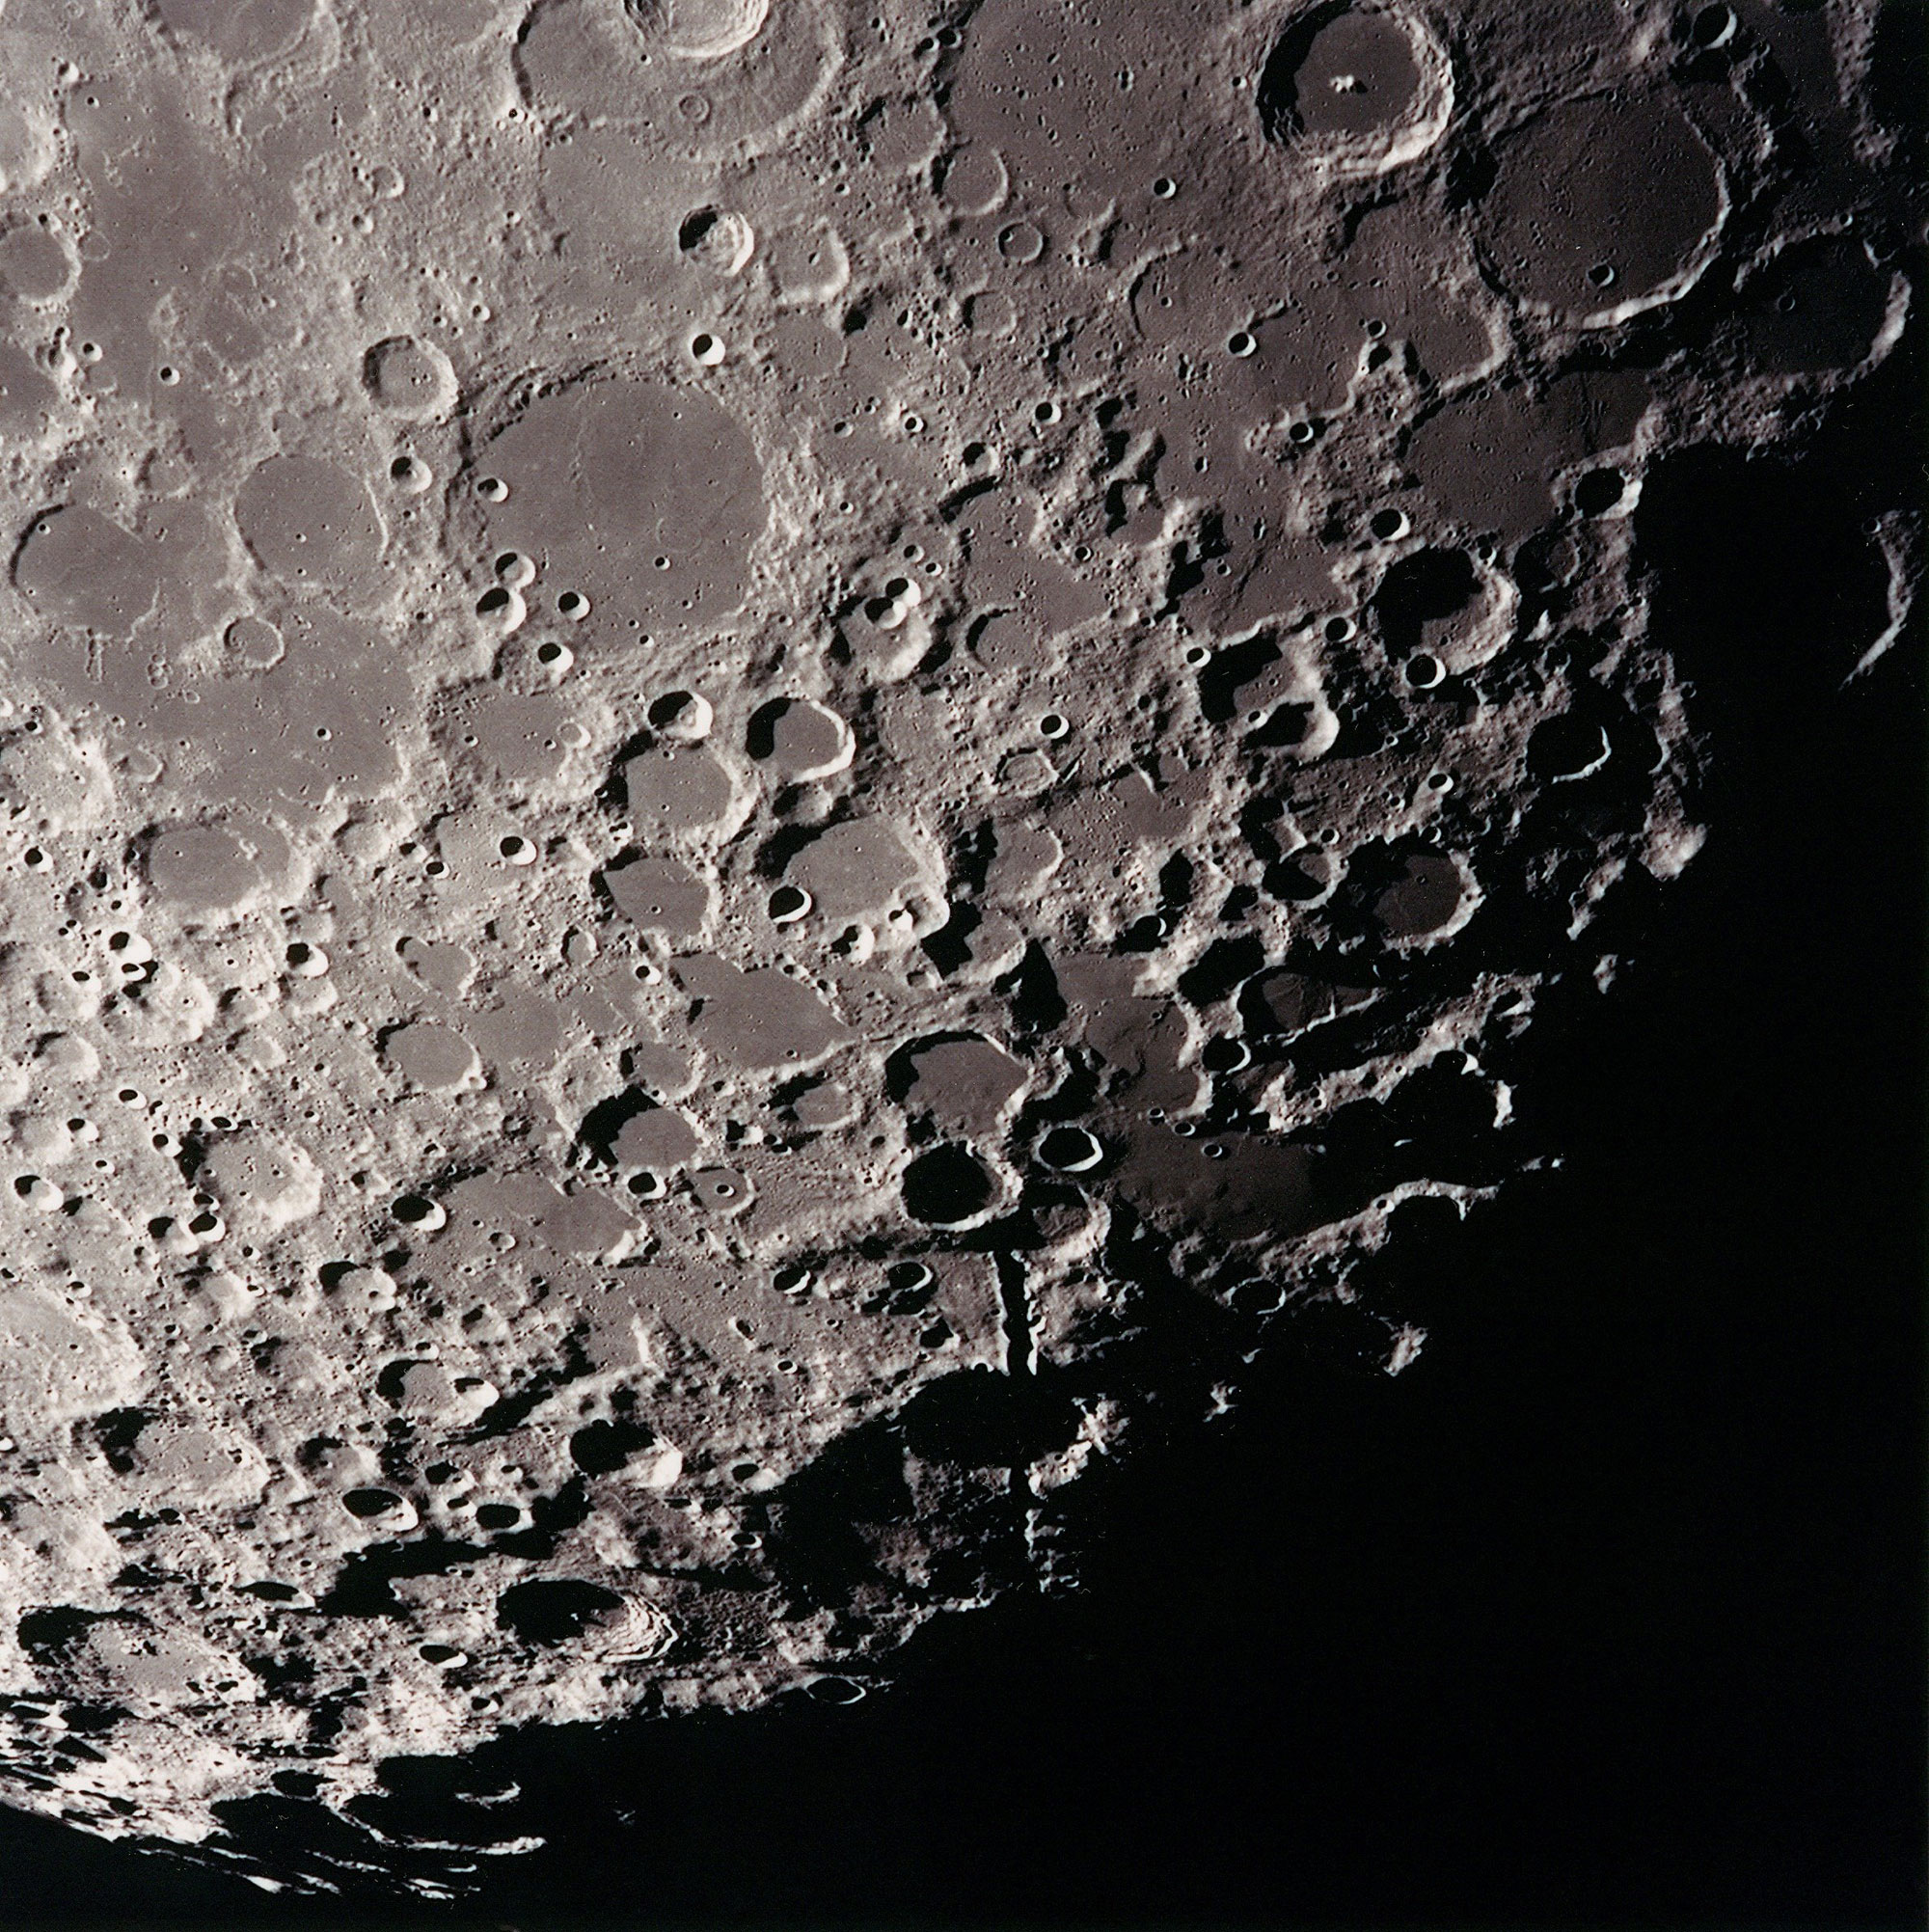 View from lunar orbit looking towards the Moon's South pole. Credit: NASA via Retro Space Images